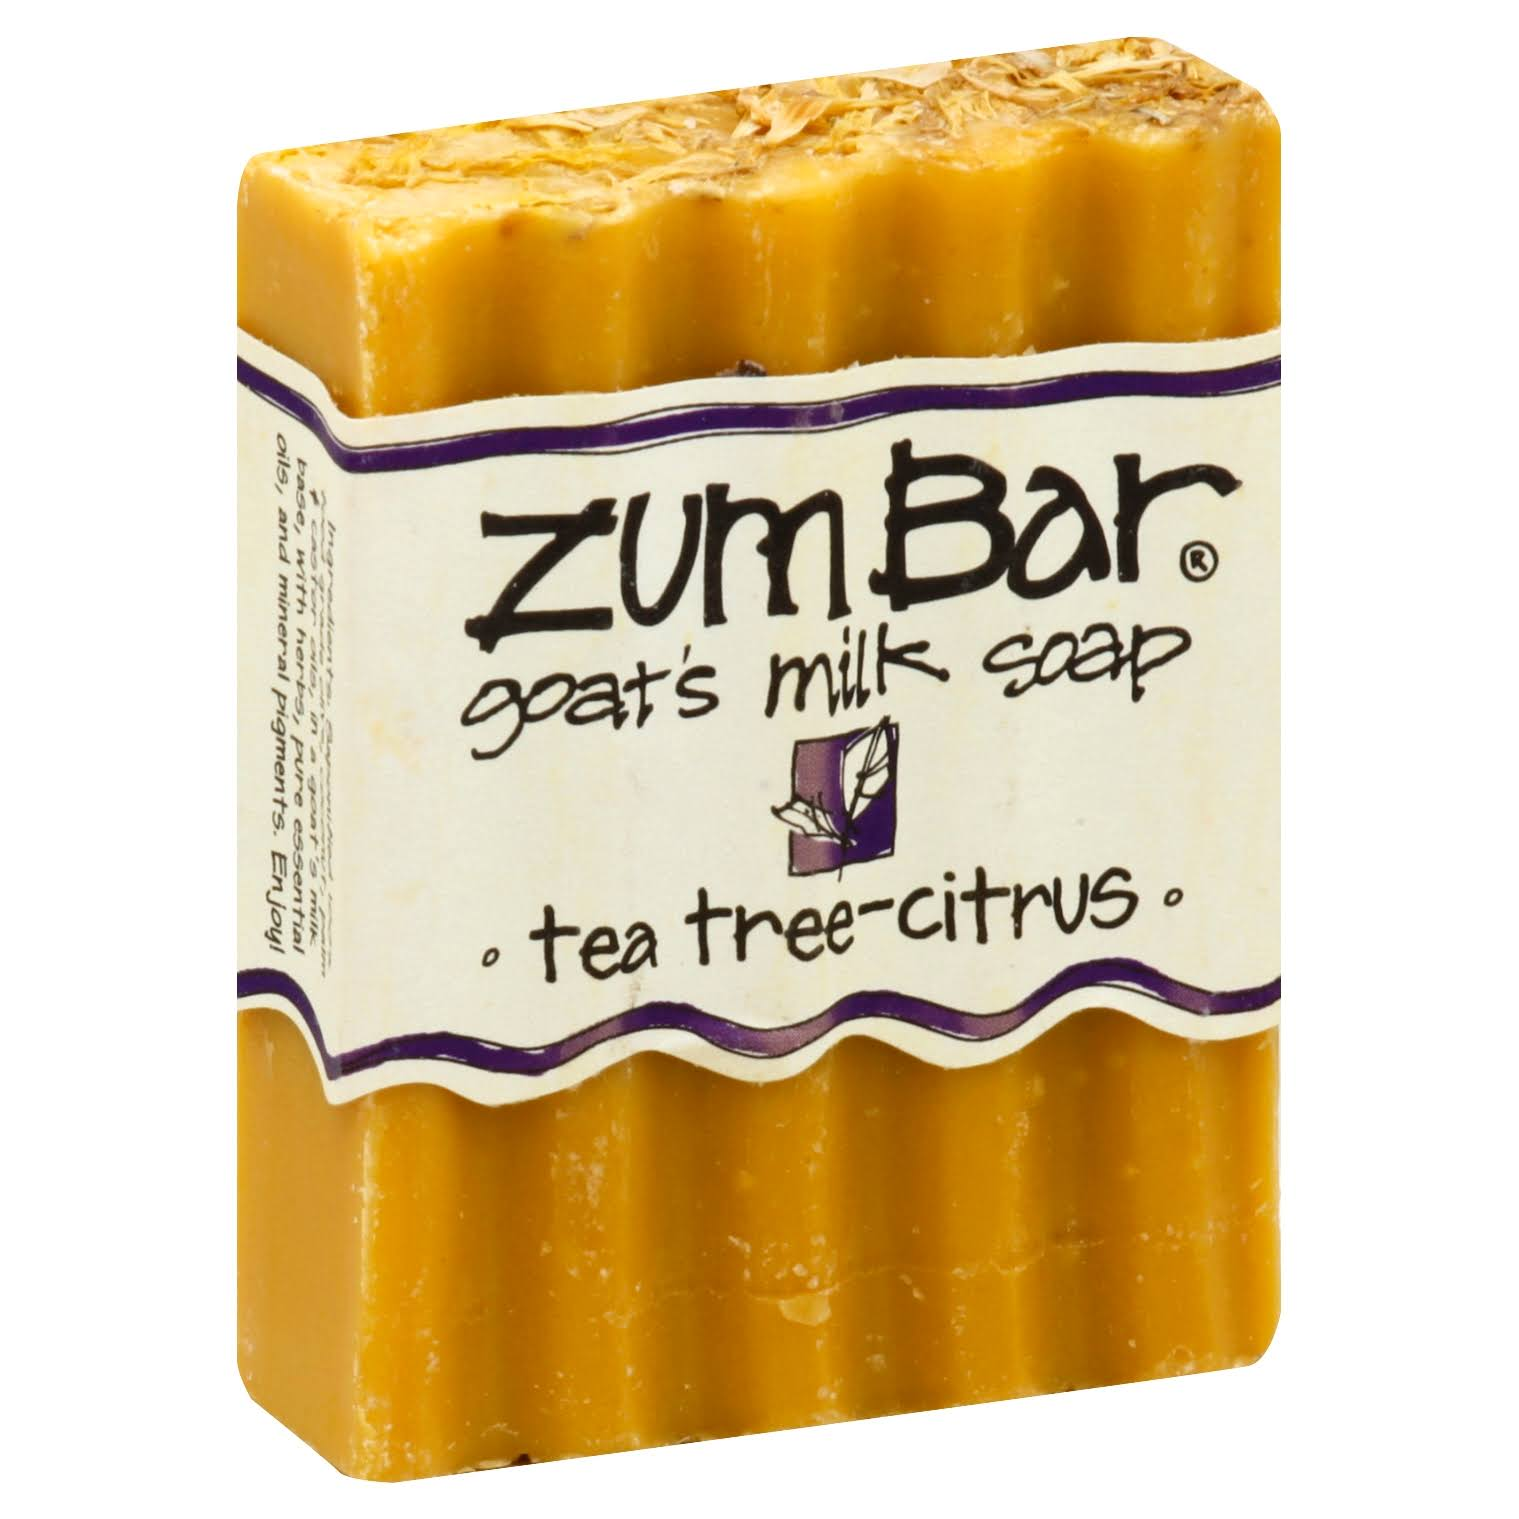 Indigo Wild Zum Bar Goats Milk Soap - Tea Tree and Citrus, 3oz